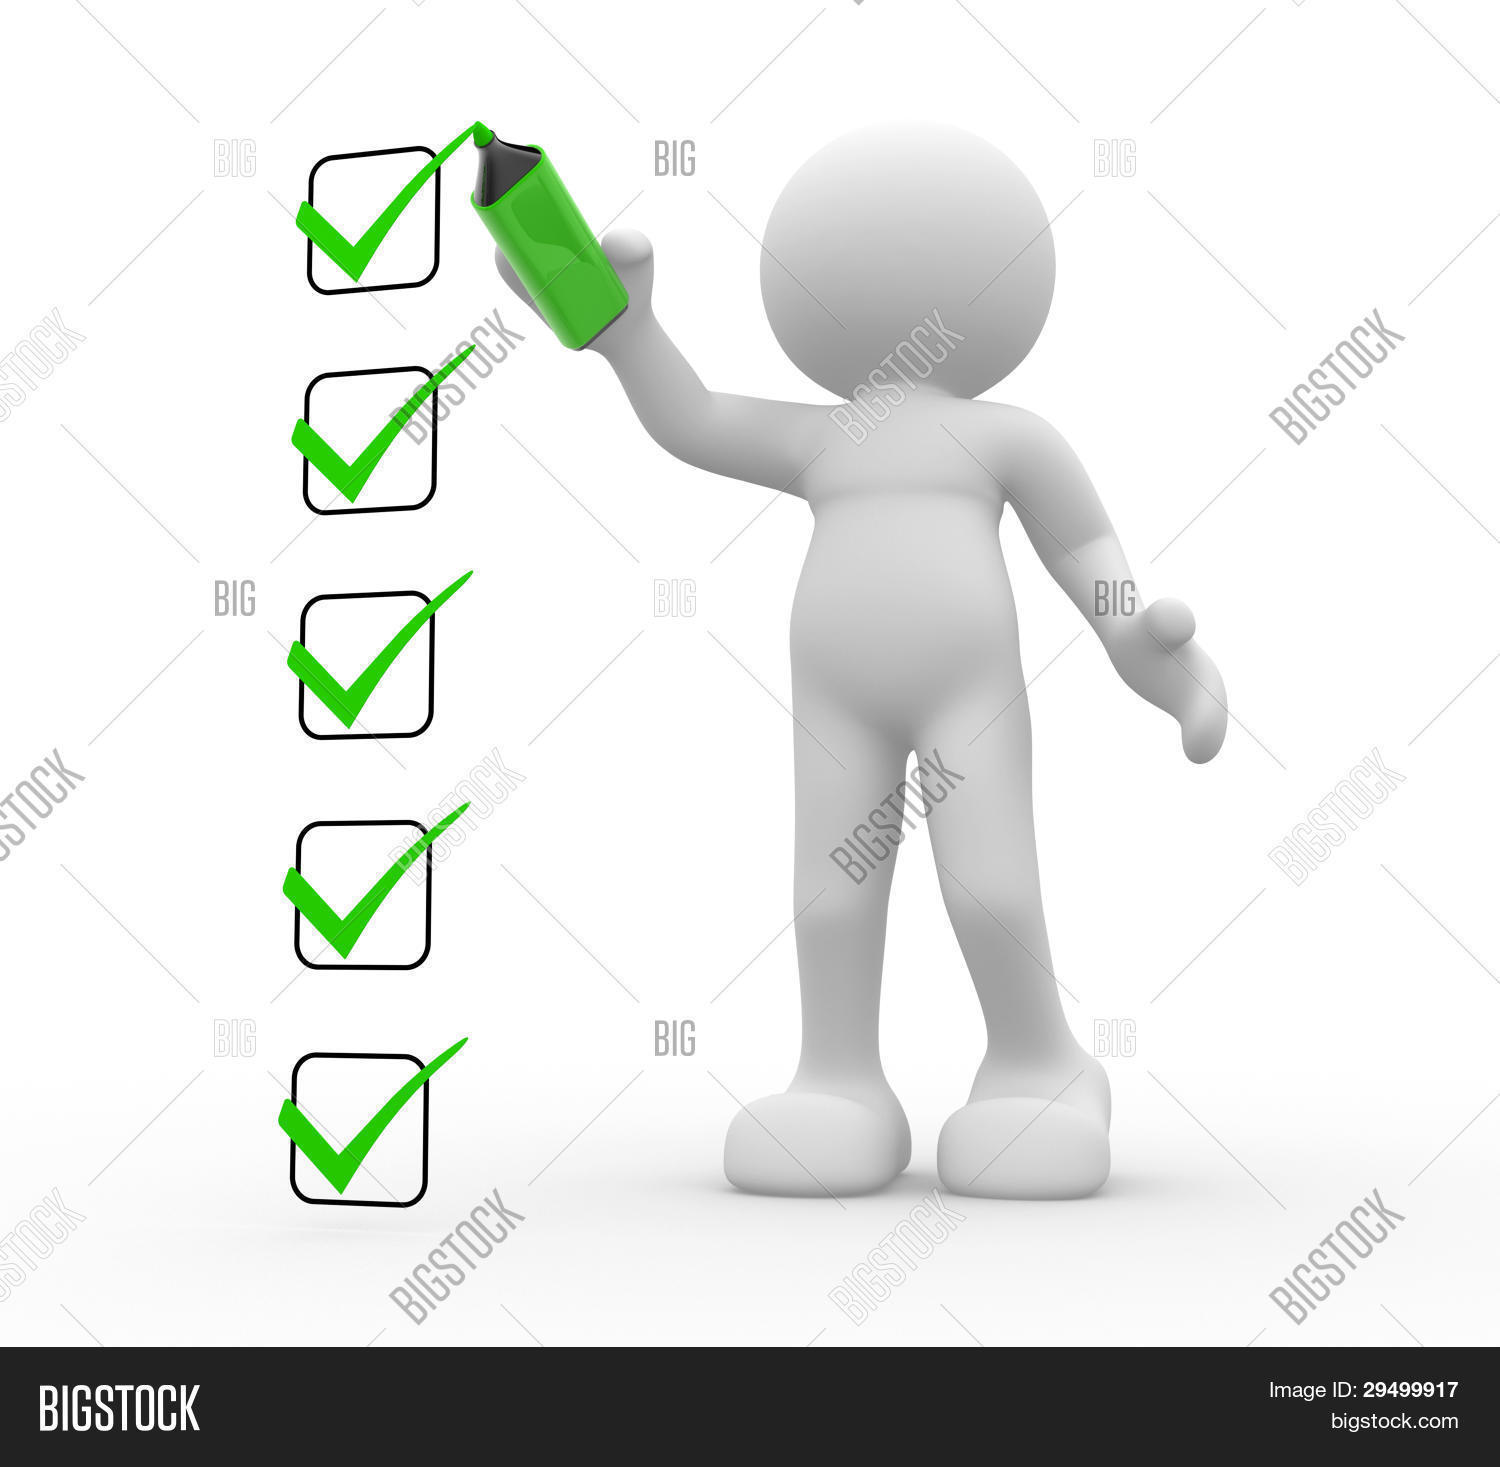 3d,3d man,3d people,background,character,check,check list,checklist,clip-art,complete,concept,conceptual,document,figure,graphic,green,guy,hold,human,icon,idea,illustration,image,list,look,man,mark,men,offset,ok,paper,people,person,puppet,read,render,text,tick,visualization,white,yes